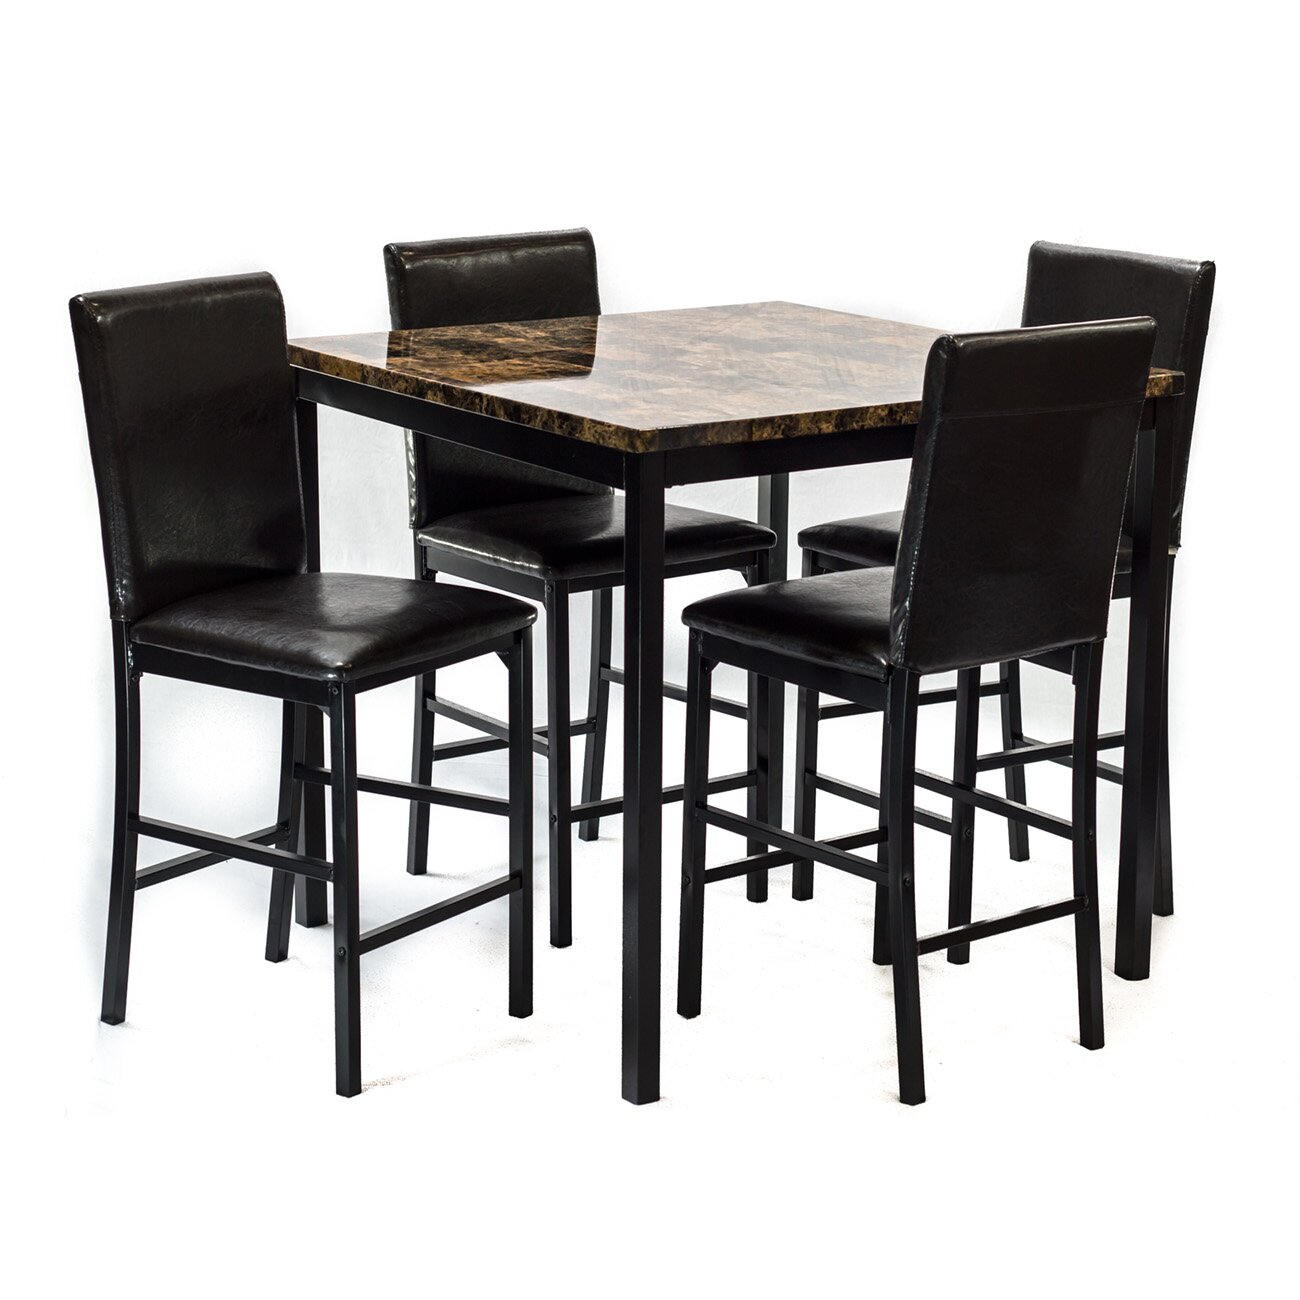 Hazelwood home 5 piece dining set reviews wayfair for 5 piece dining set